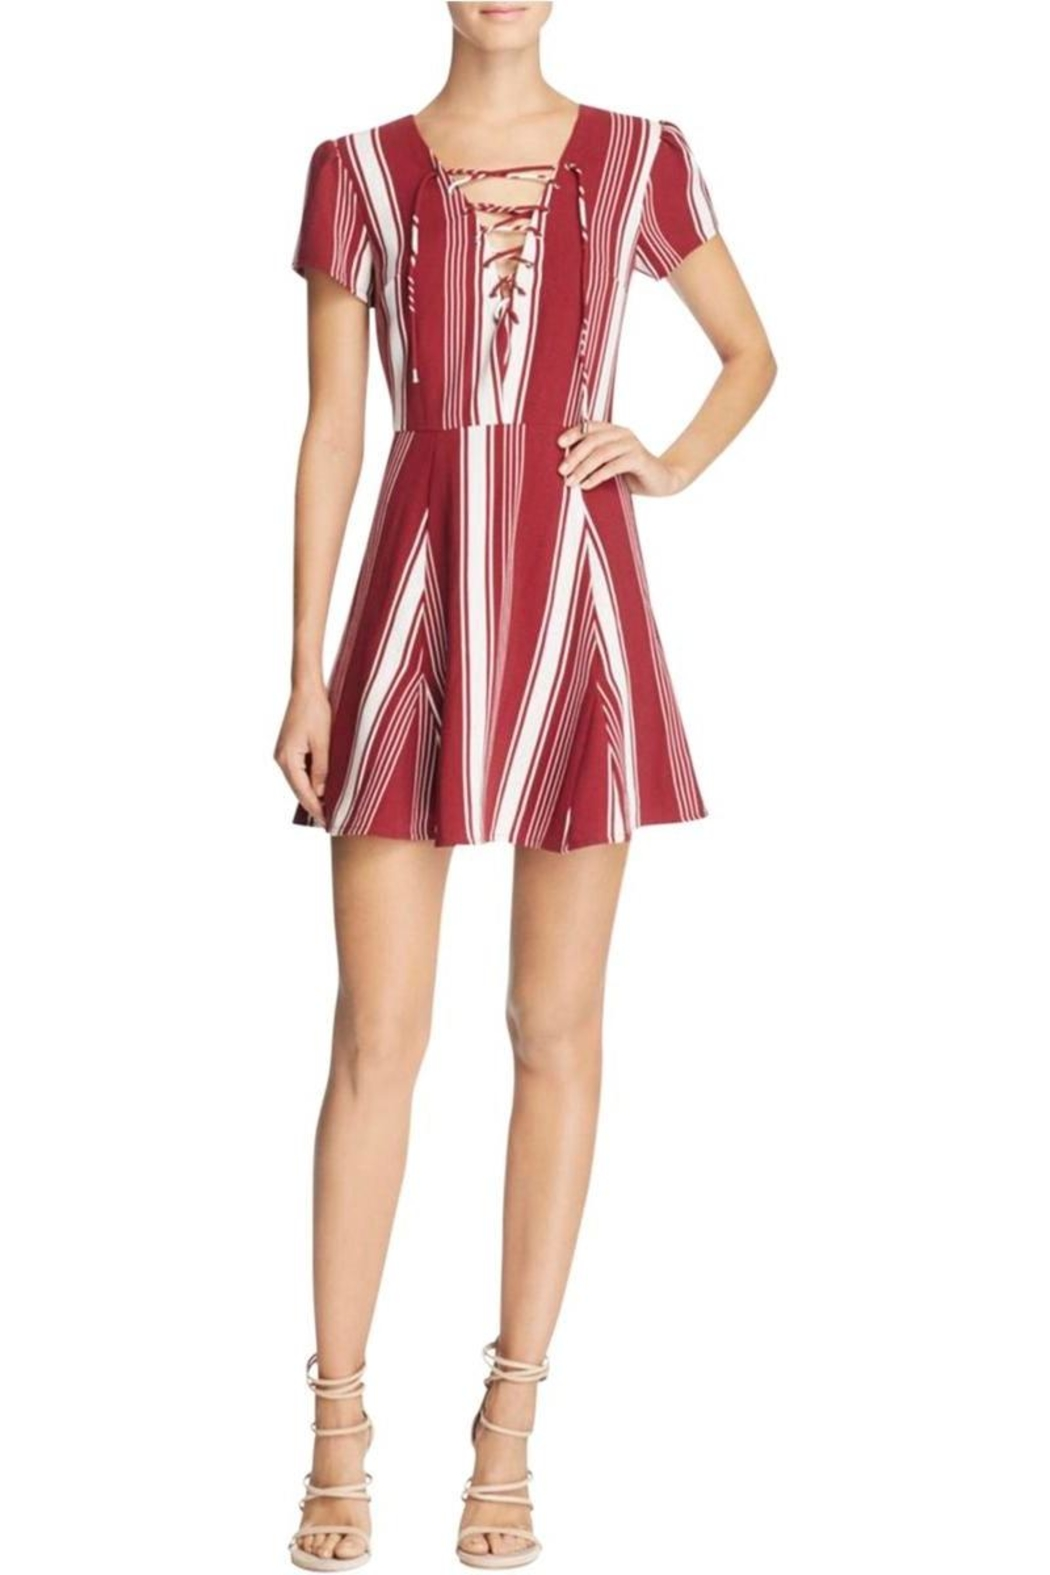 Lovers + Friends Lace-Up Striped Dress - Main Image